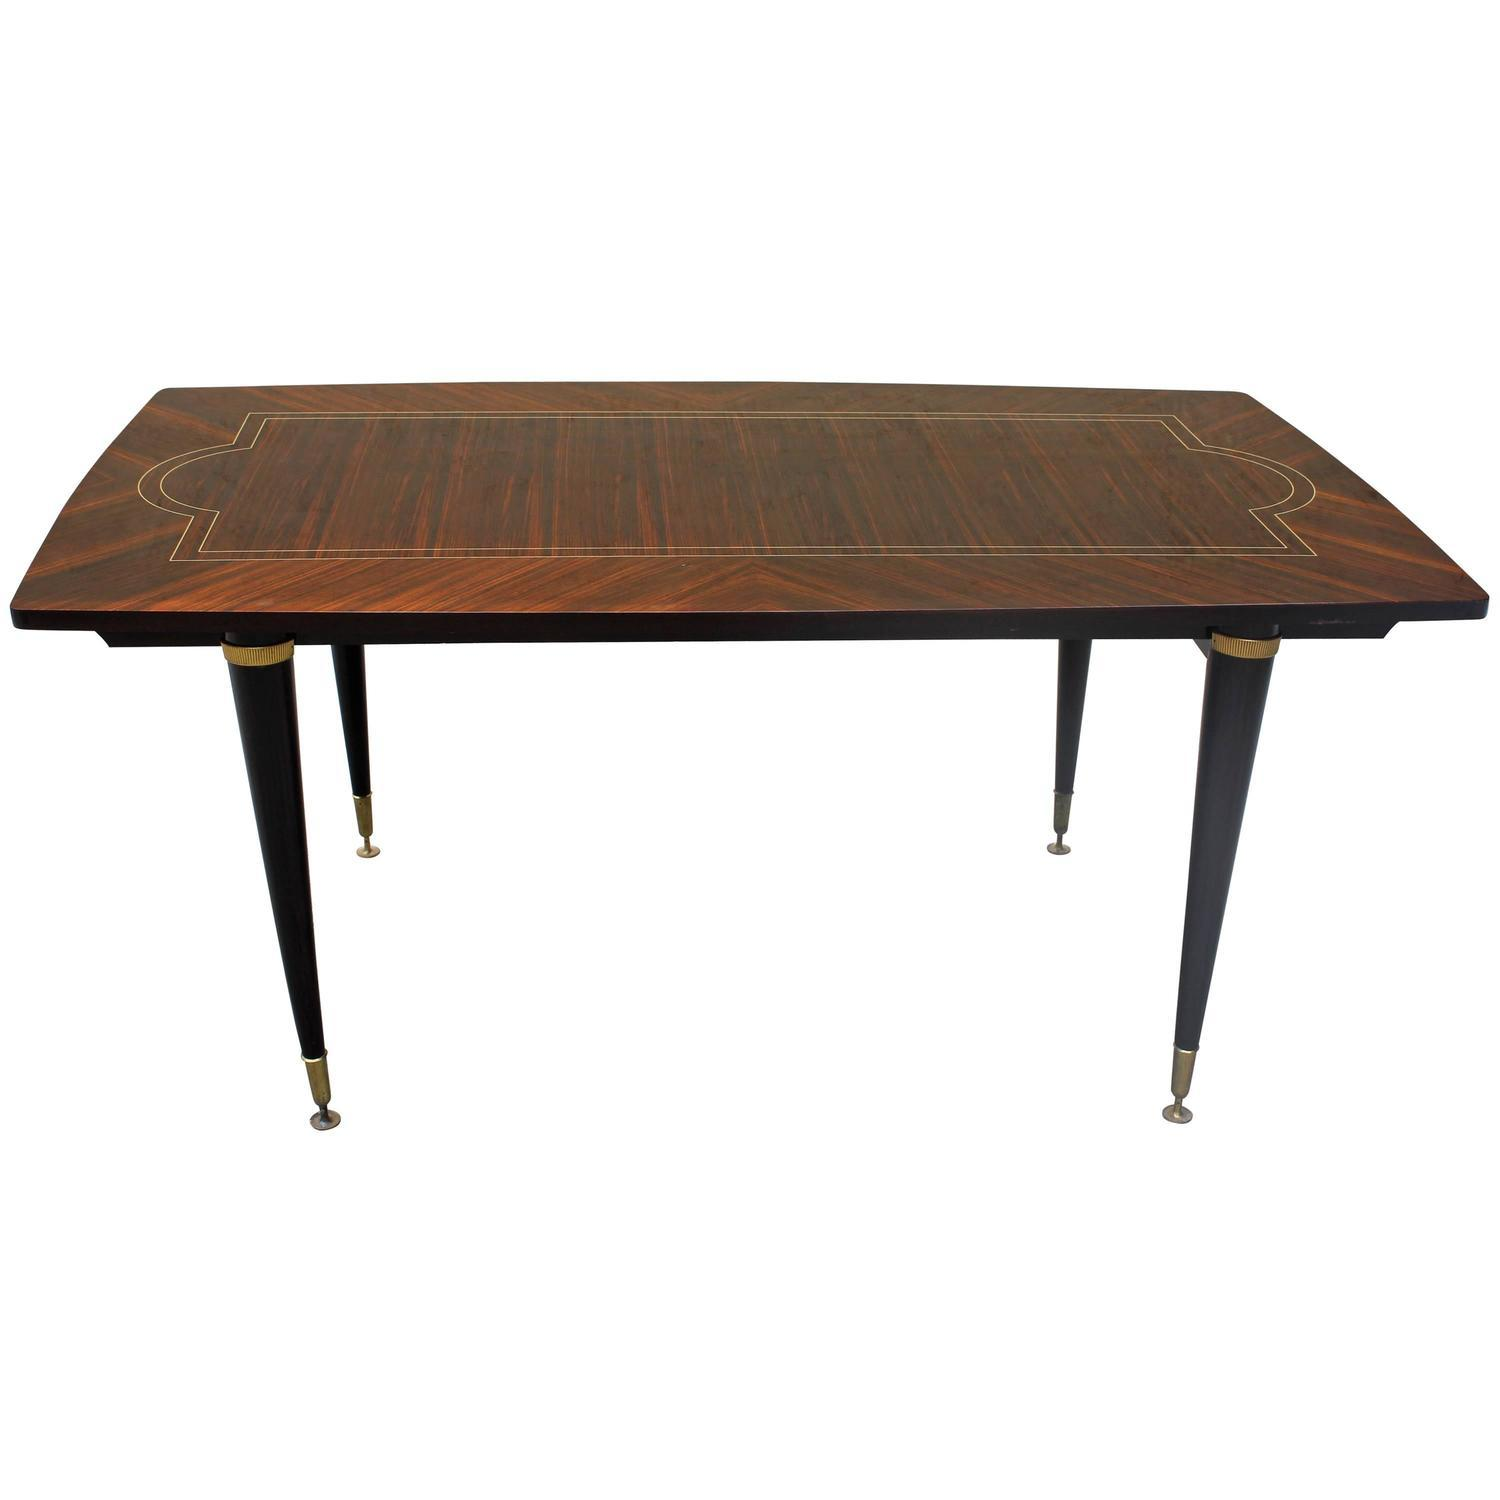 Ethan Allen Livingston Dining Table Vintage Used French Dining Tables Chairish